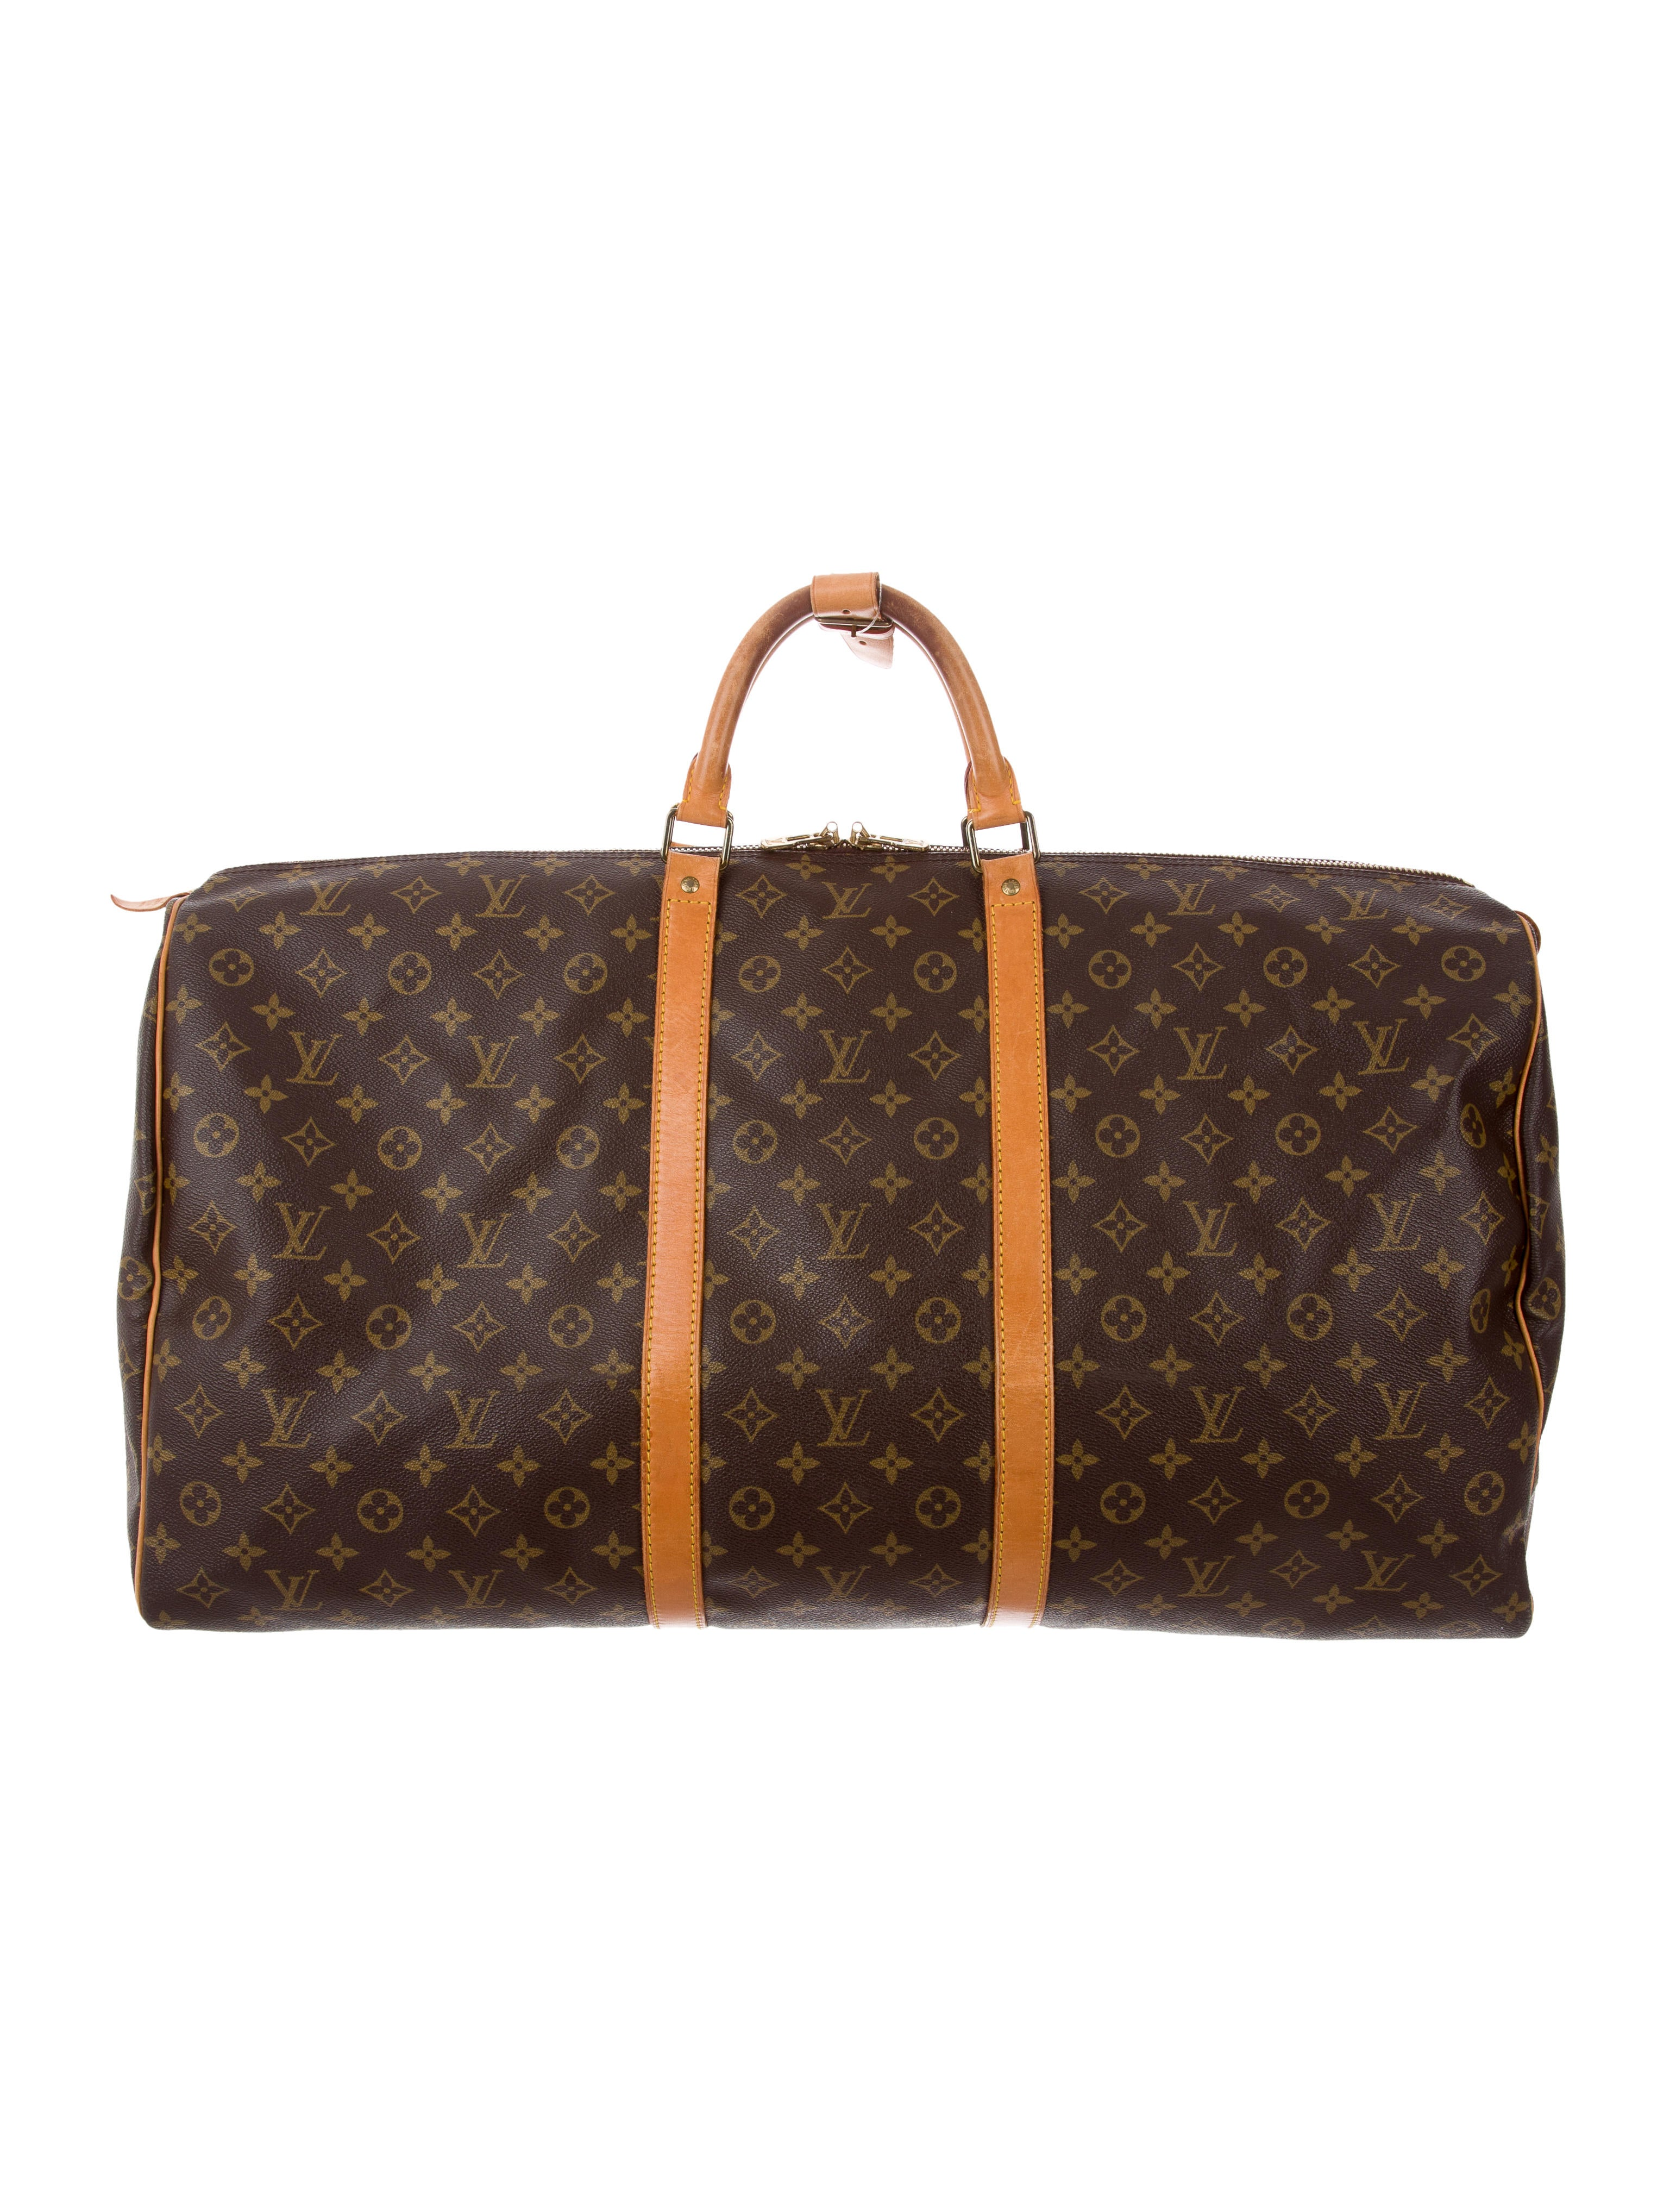 louis vuitton monogram keepall 60 handbags lou139637 the realreal. Black Bedroom Furniture Sets. Home Design Ideas